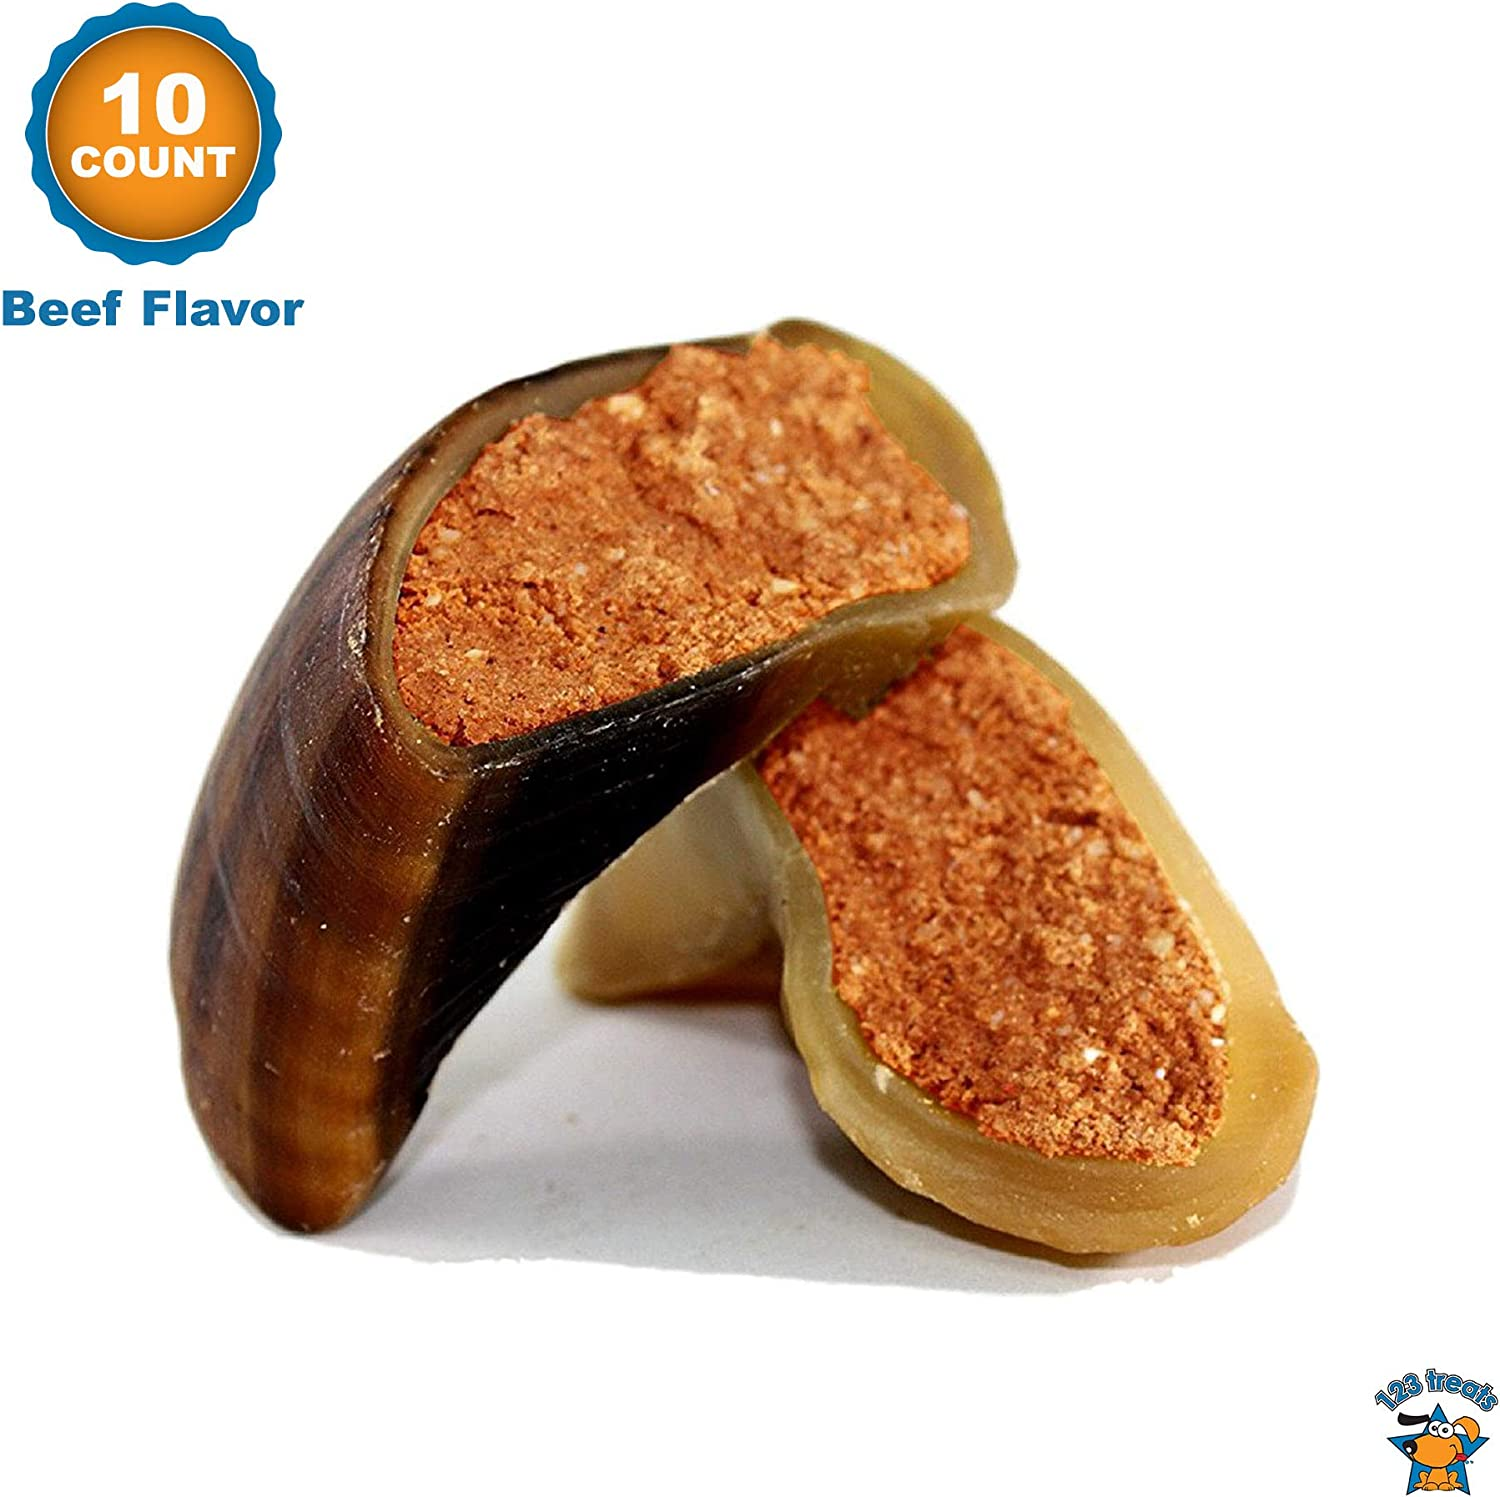 123 Treats | Filled Cow Hooves - Delicious Peanut Butter, Beef and Cheese with Bacon Flavors | Natural Dog Stuffed Beef Hoof Snacks 71MXUnFcNYL